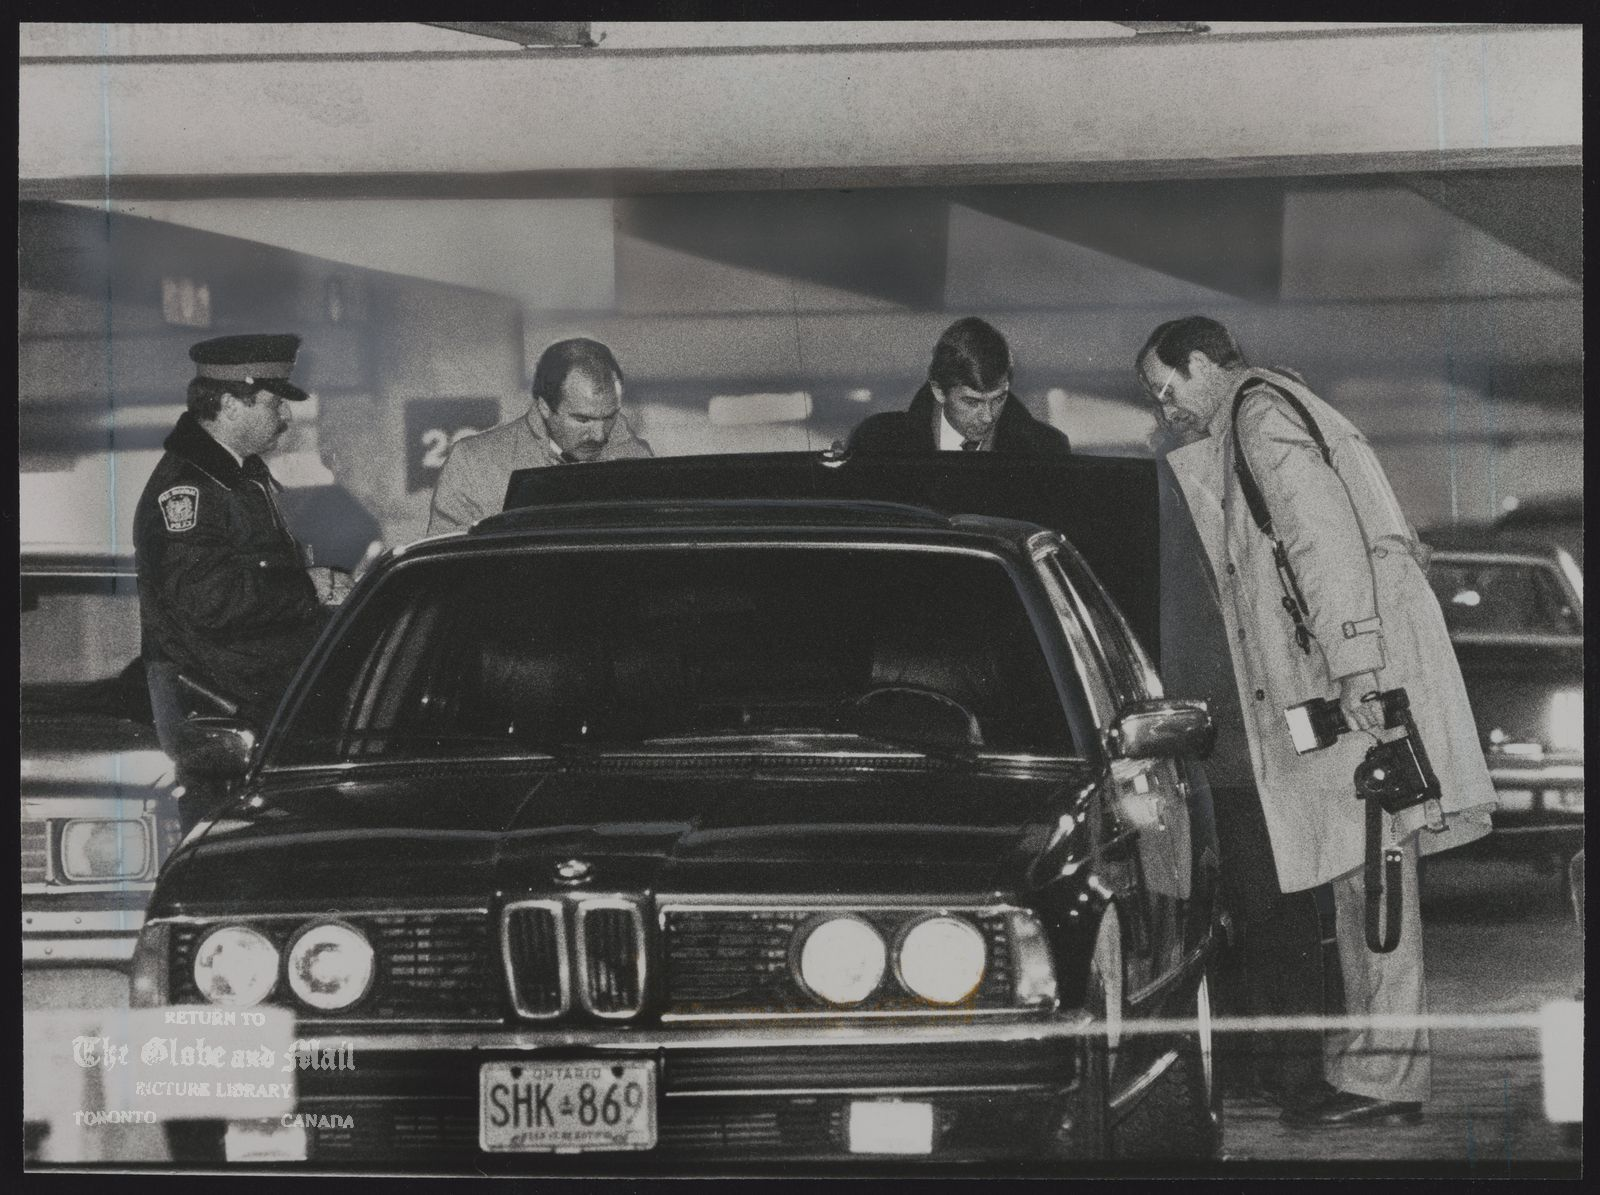 Paul VOLPE Toronto. Police examine the BMW car in which Paul Volpe's body was found in a multi-story parking garage at Toronto airport.